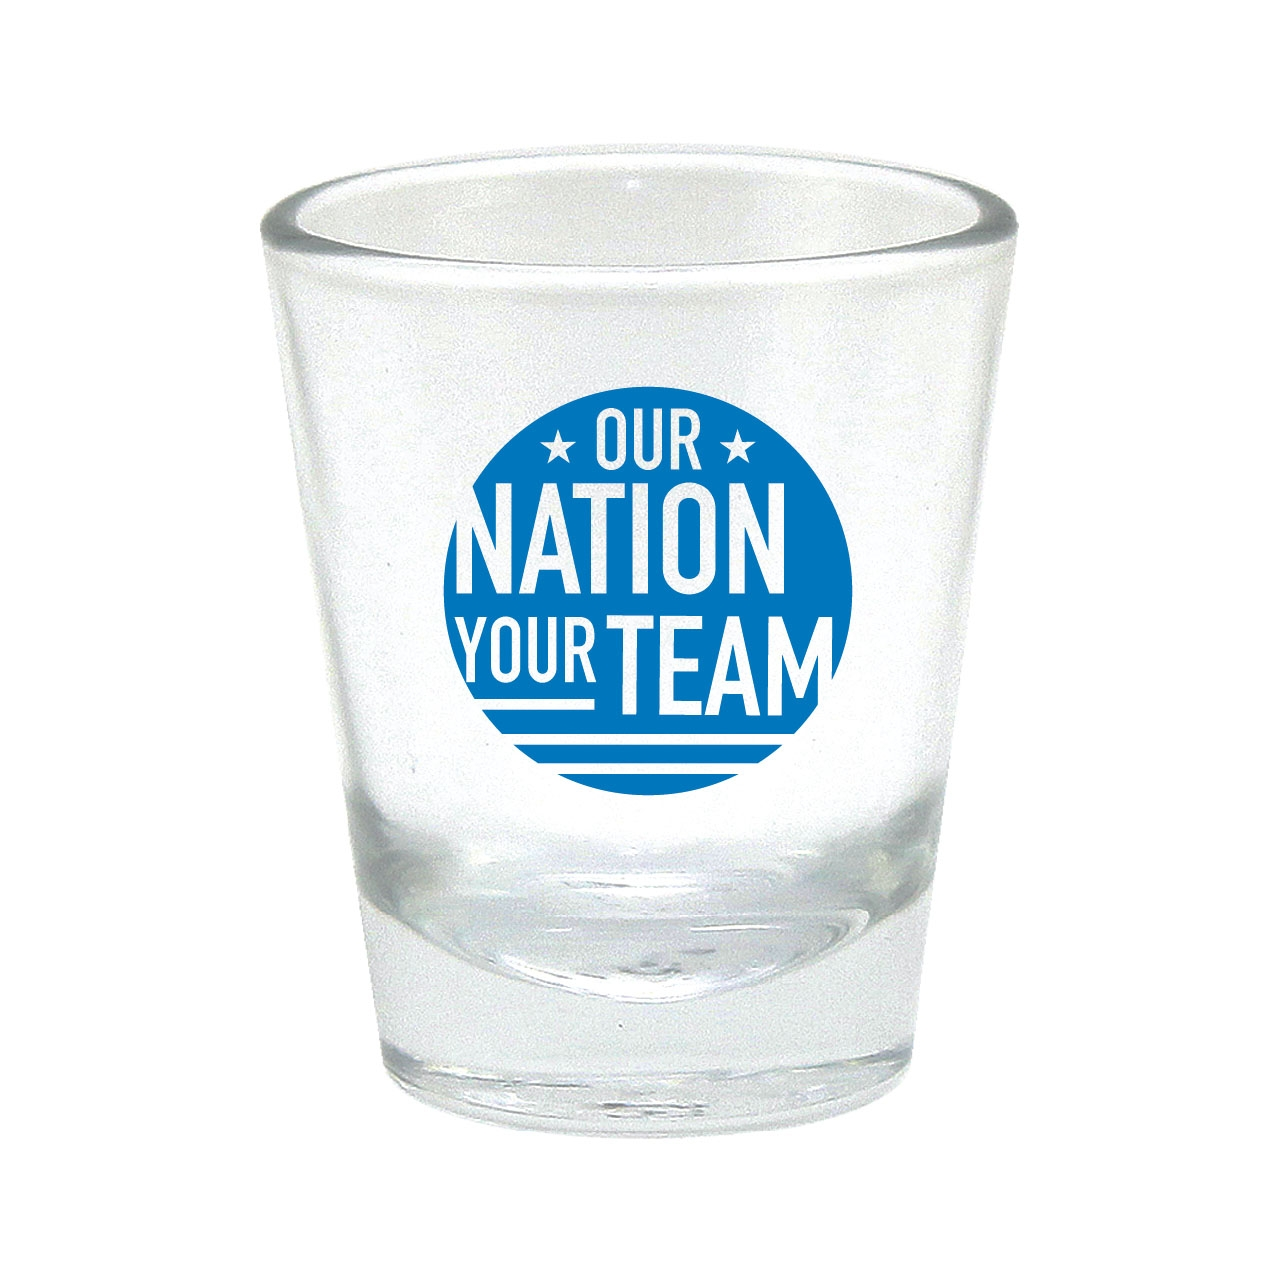 OUR NATION YOUR TEAM SHOT GLASS BLUE